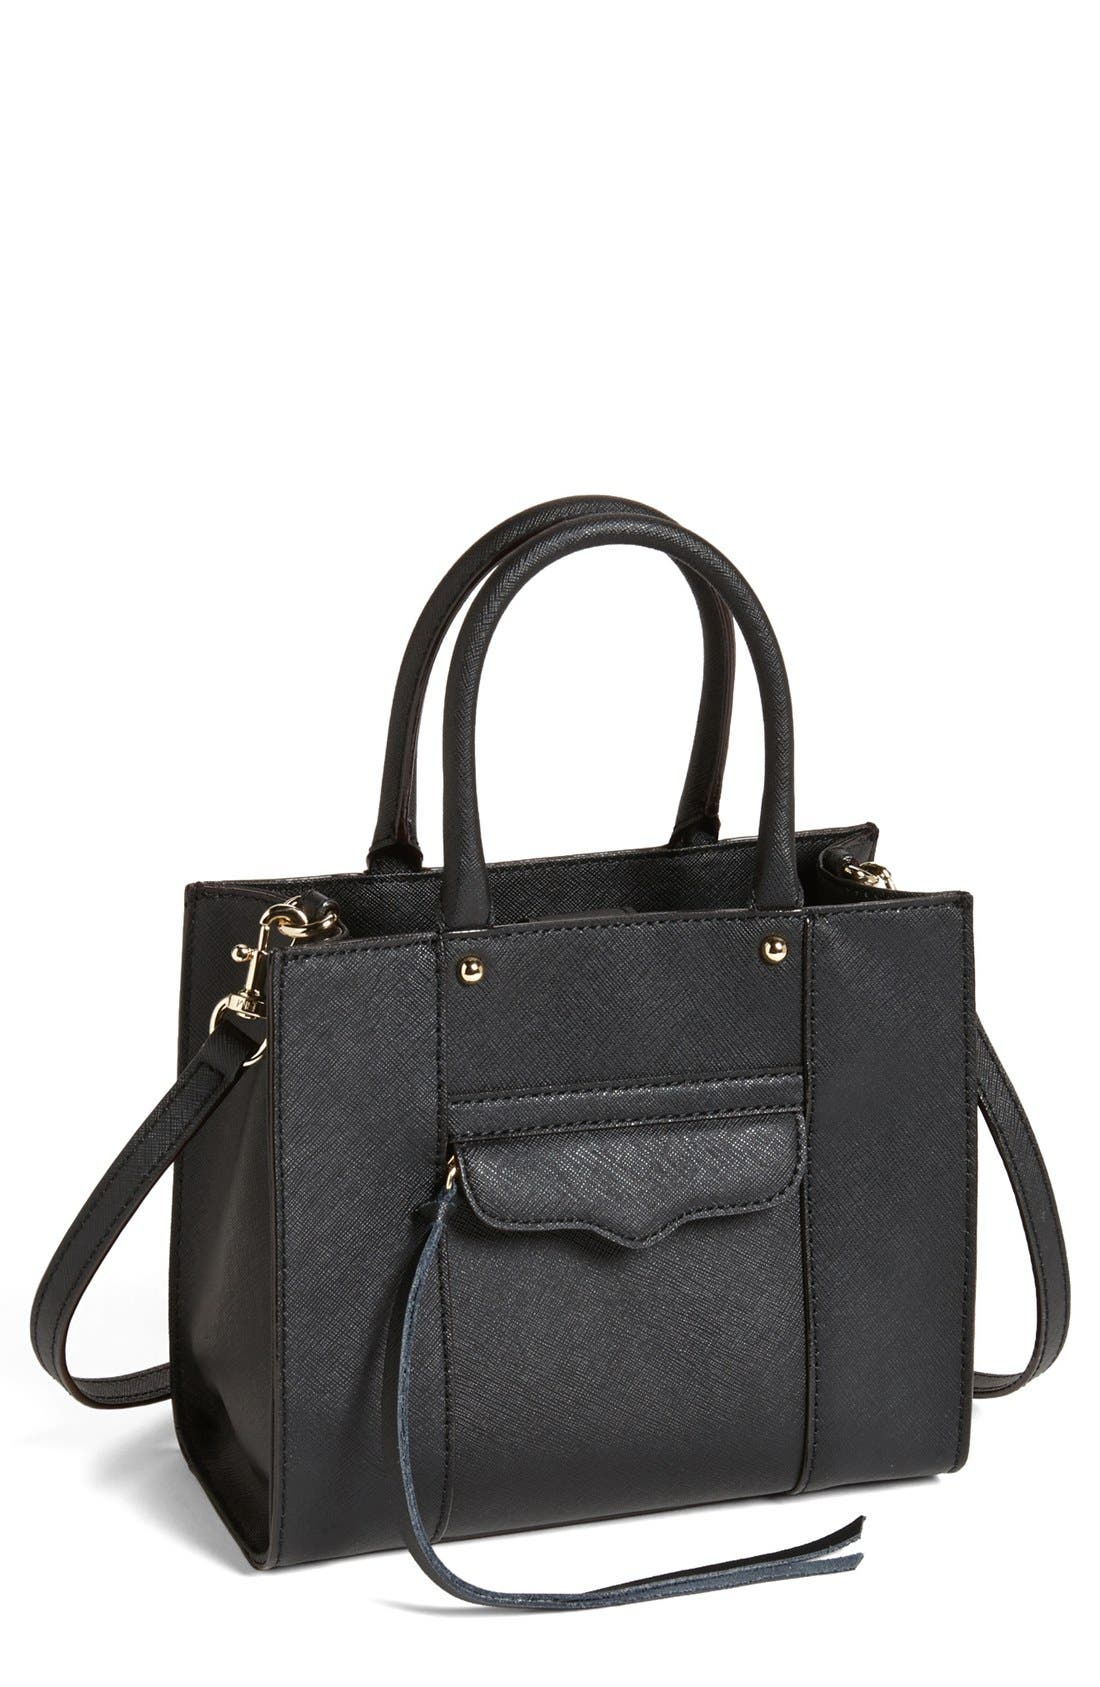 Main Image - Rebecca Minkoff 'Mini MAB Tote' Crossbody Bag